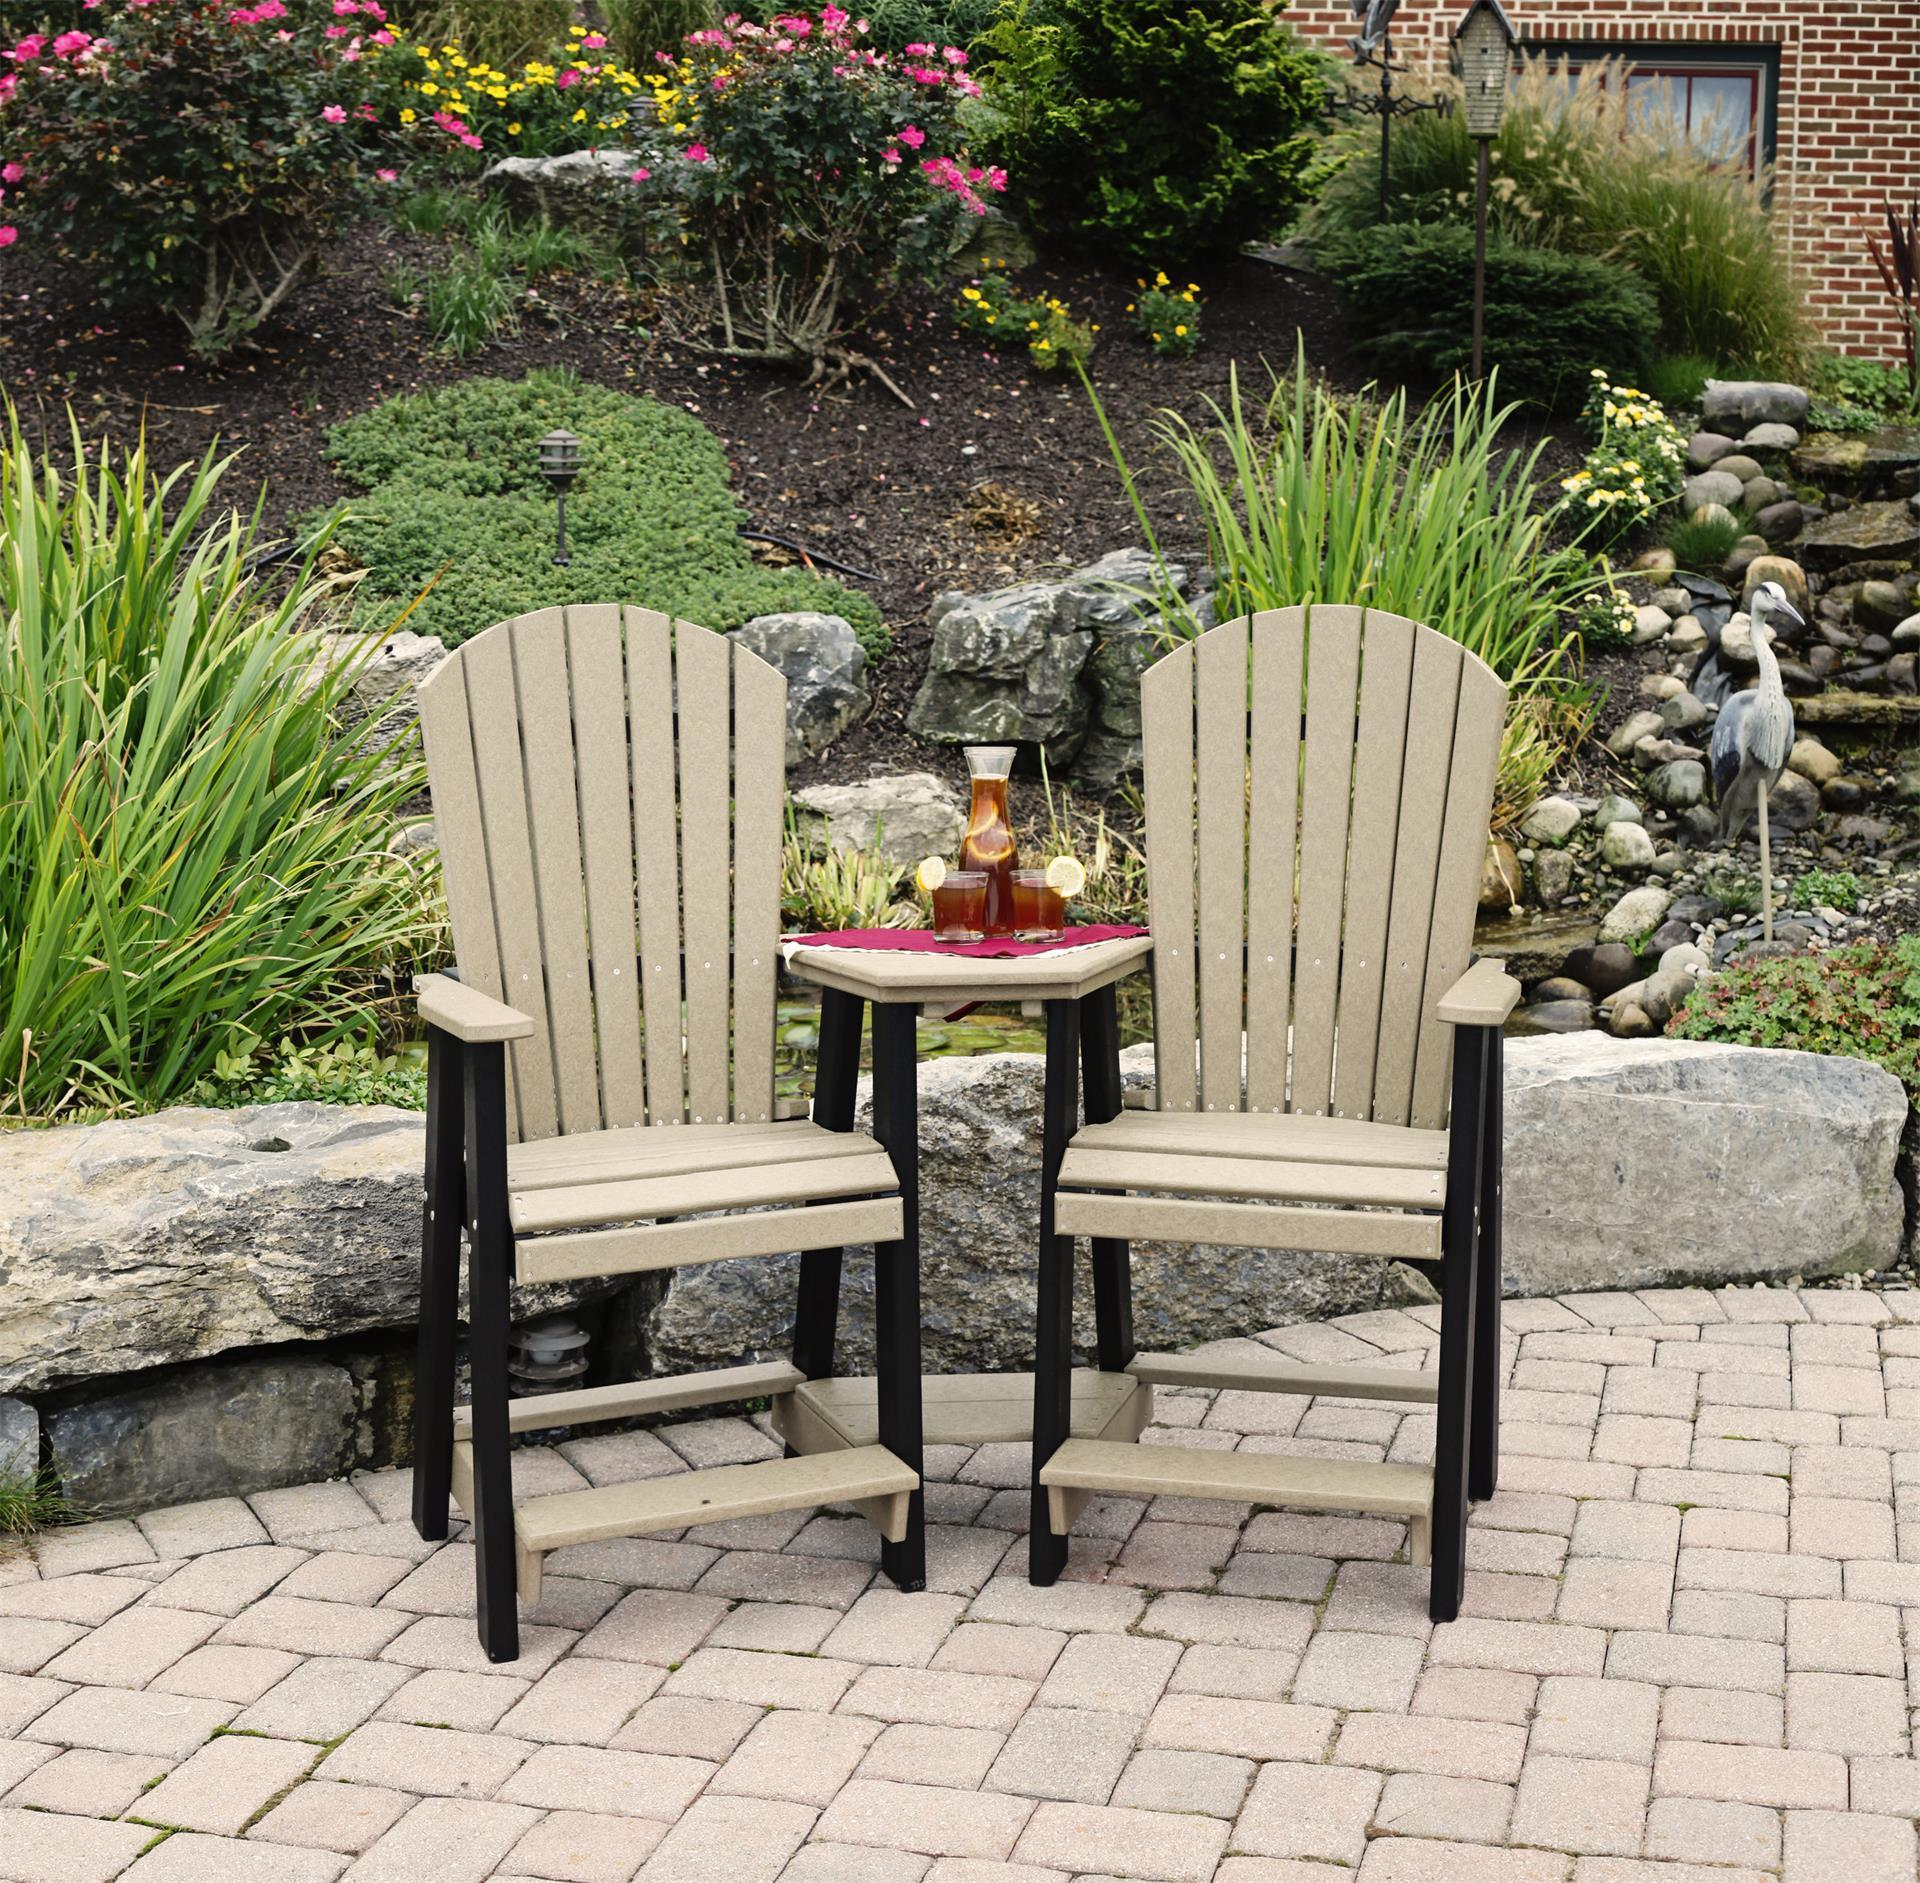 Leisure Lawns Poly Balcony Settee from DutchCrafters Amish Furniture